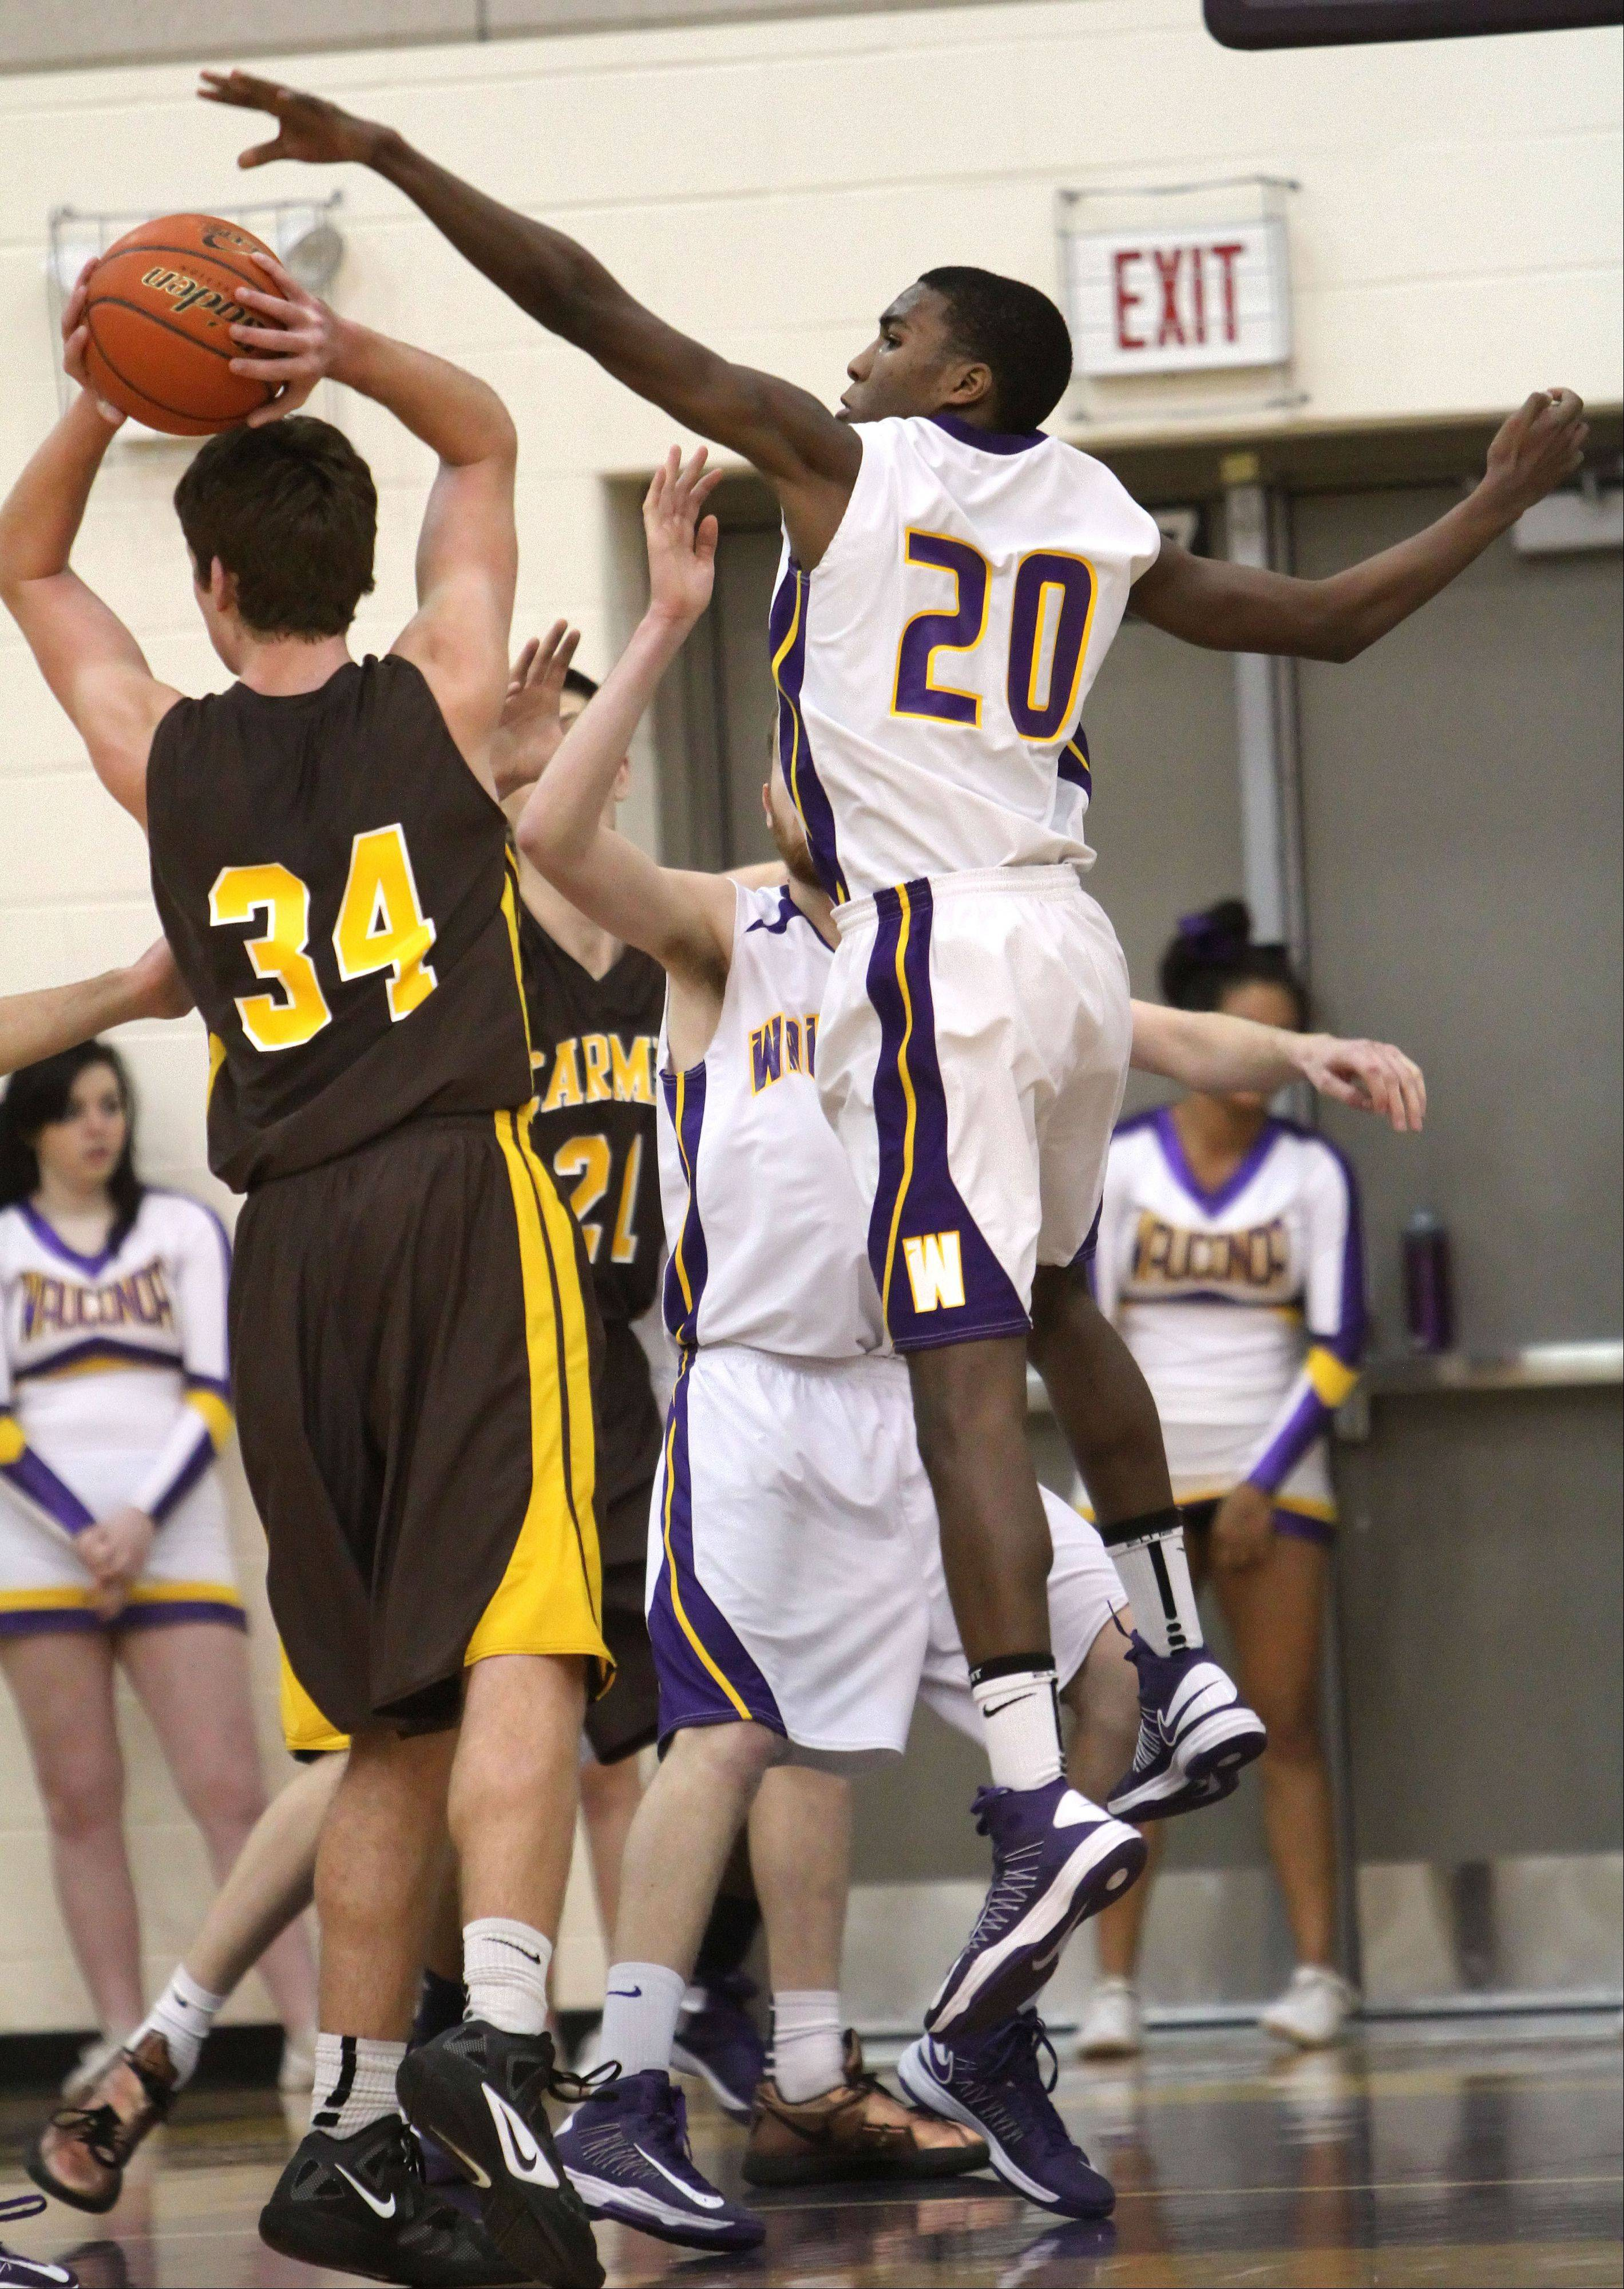 Wauconda's Devon King, right, tries to block the shot of Carmel's Cullen Barr on Wednesday night in Wauconda.